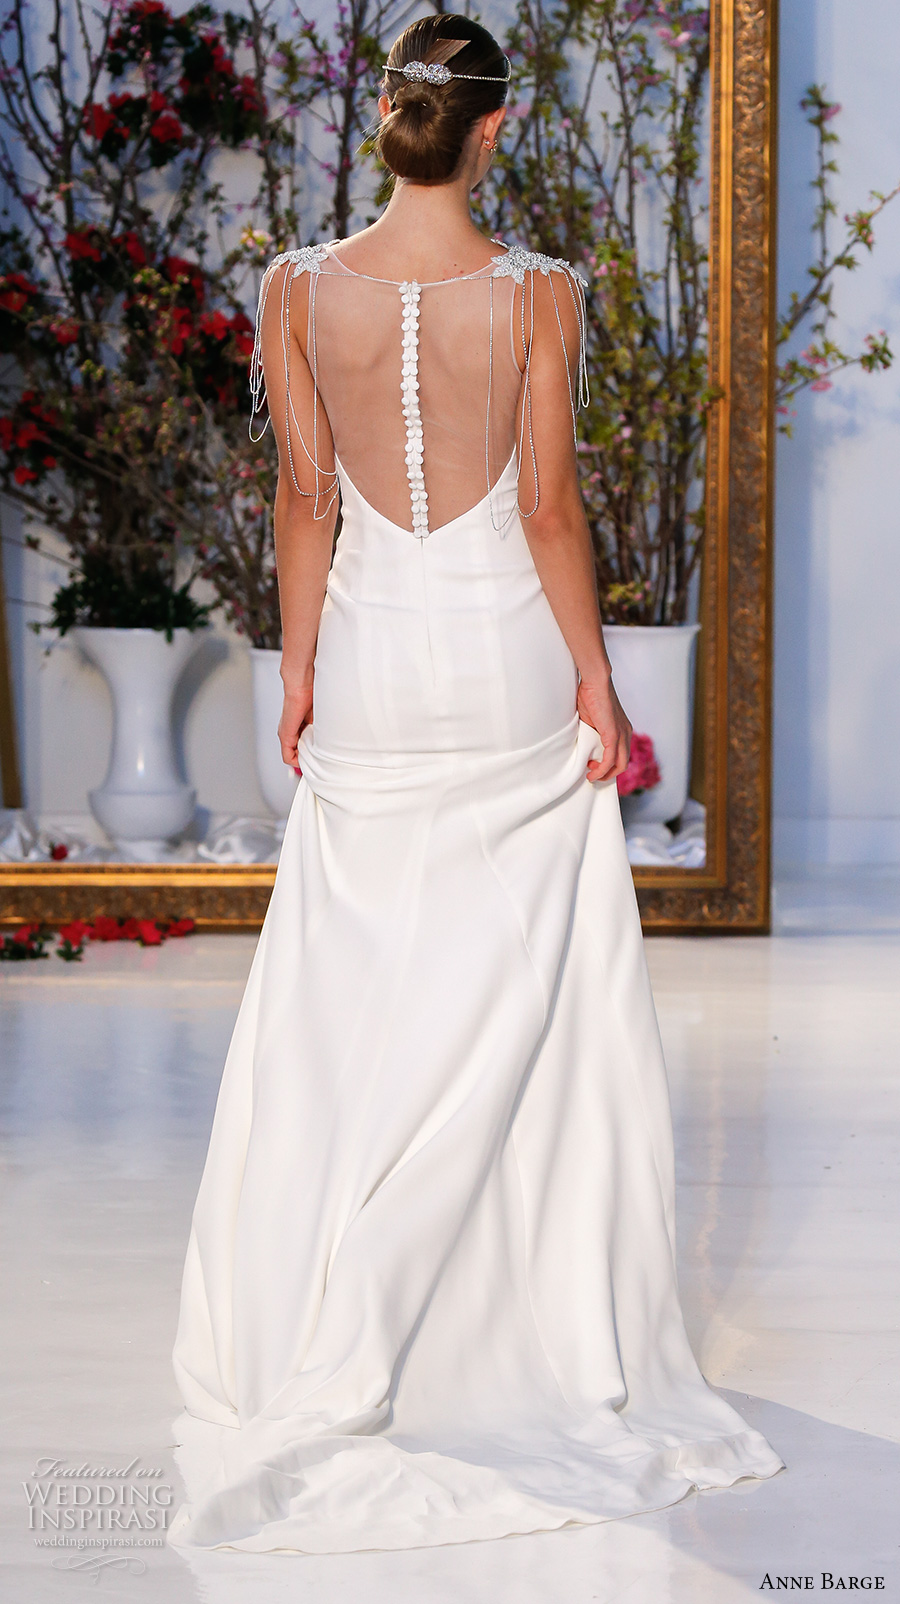 anne barge spring 2017 bridal sleeveless jeweled cap sleeves boat neckline simple chic sheath wedding dress illusion back sweep train (011) bv